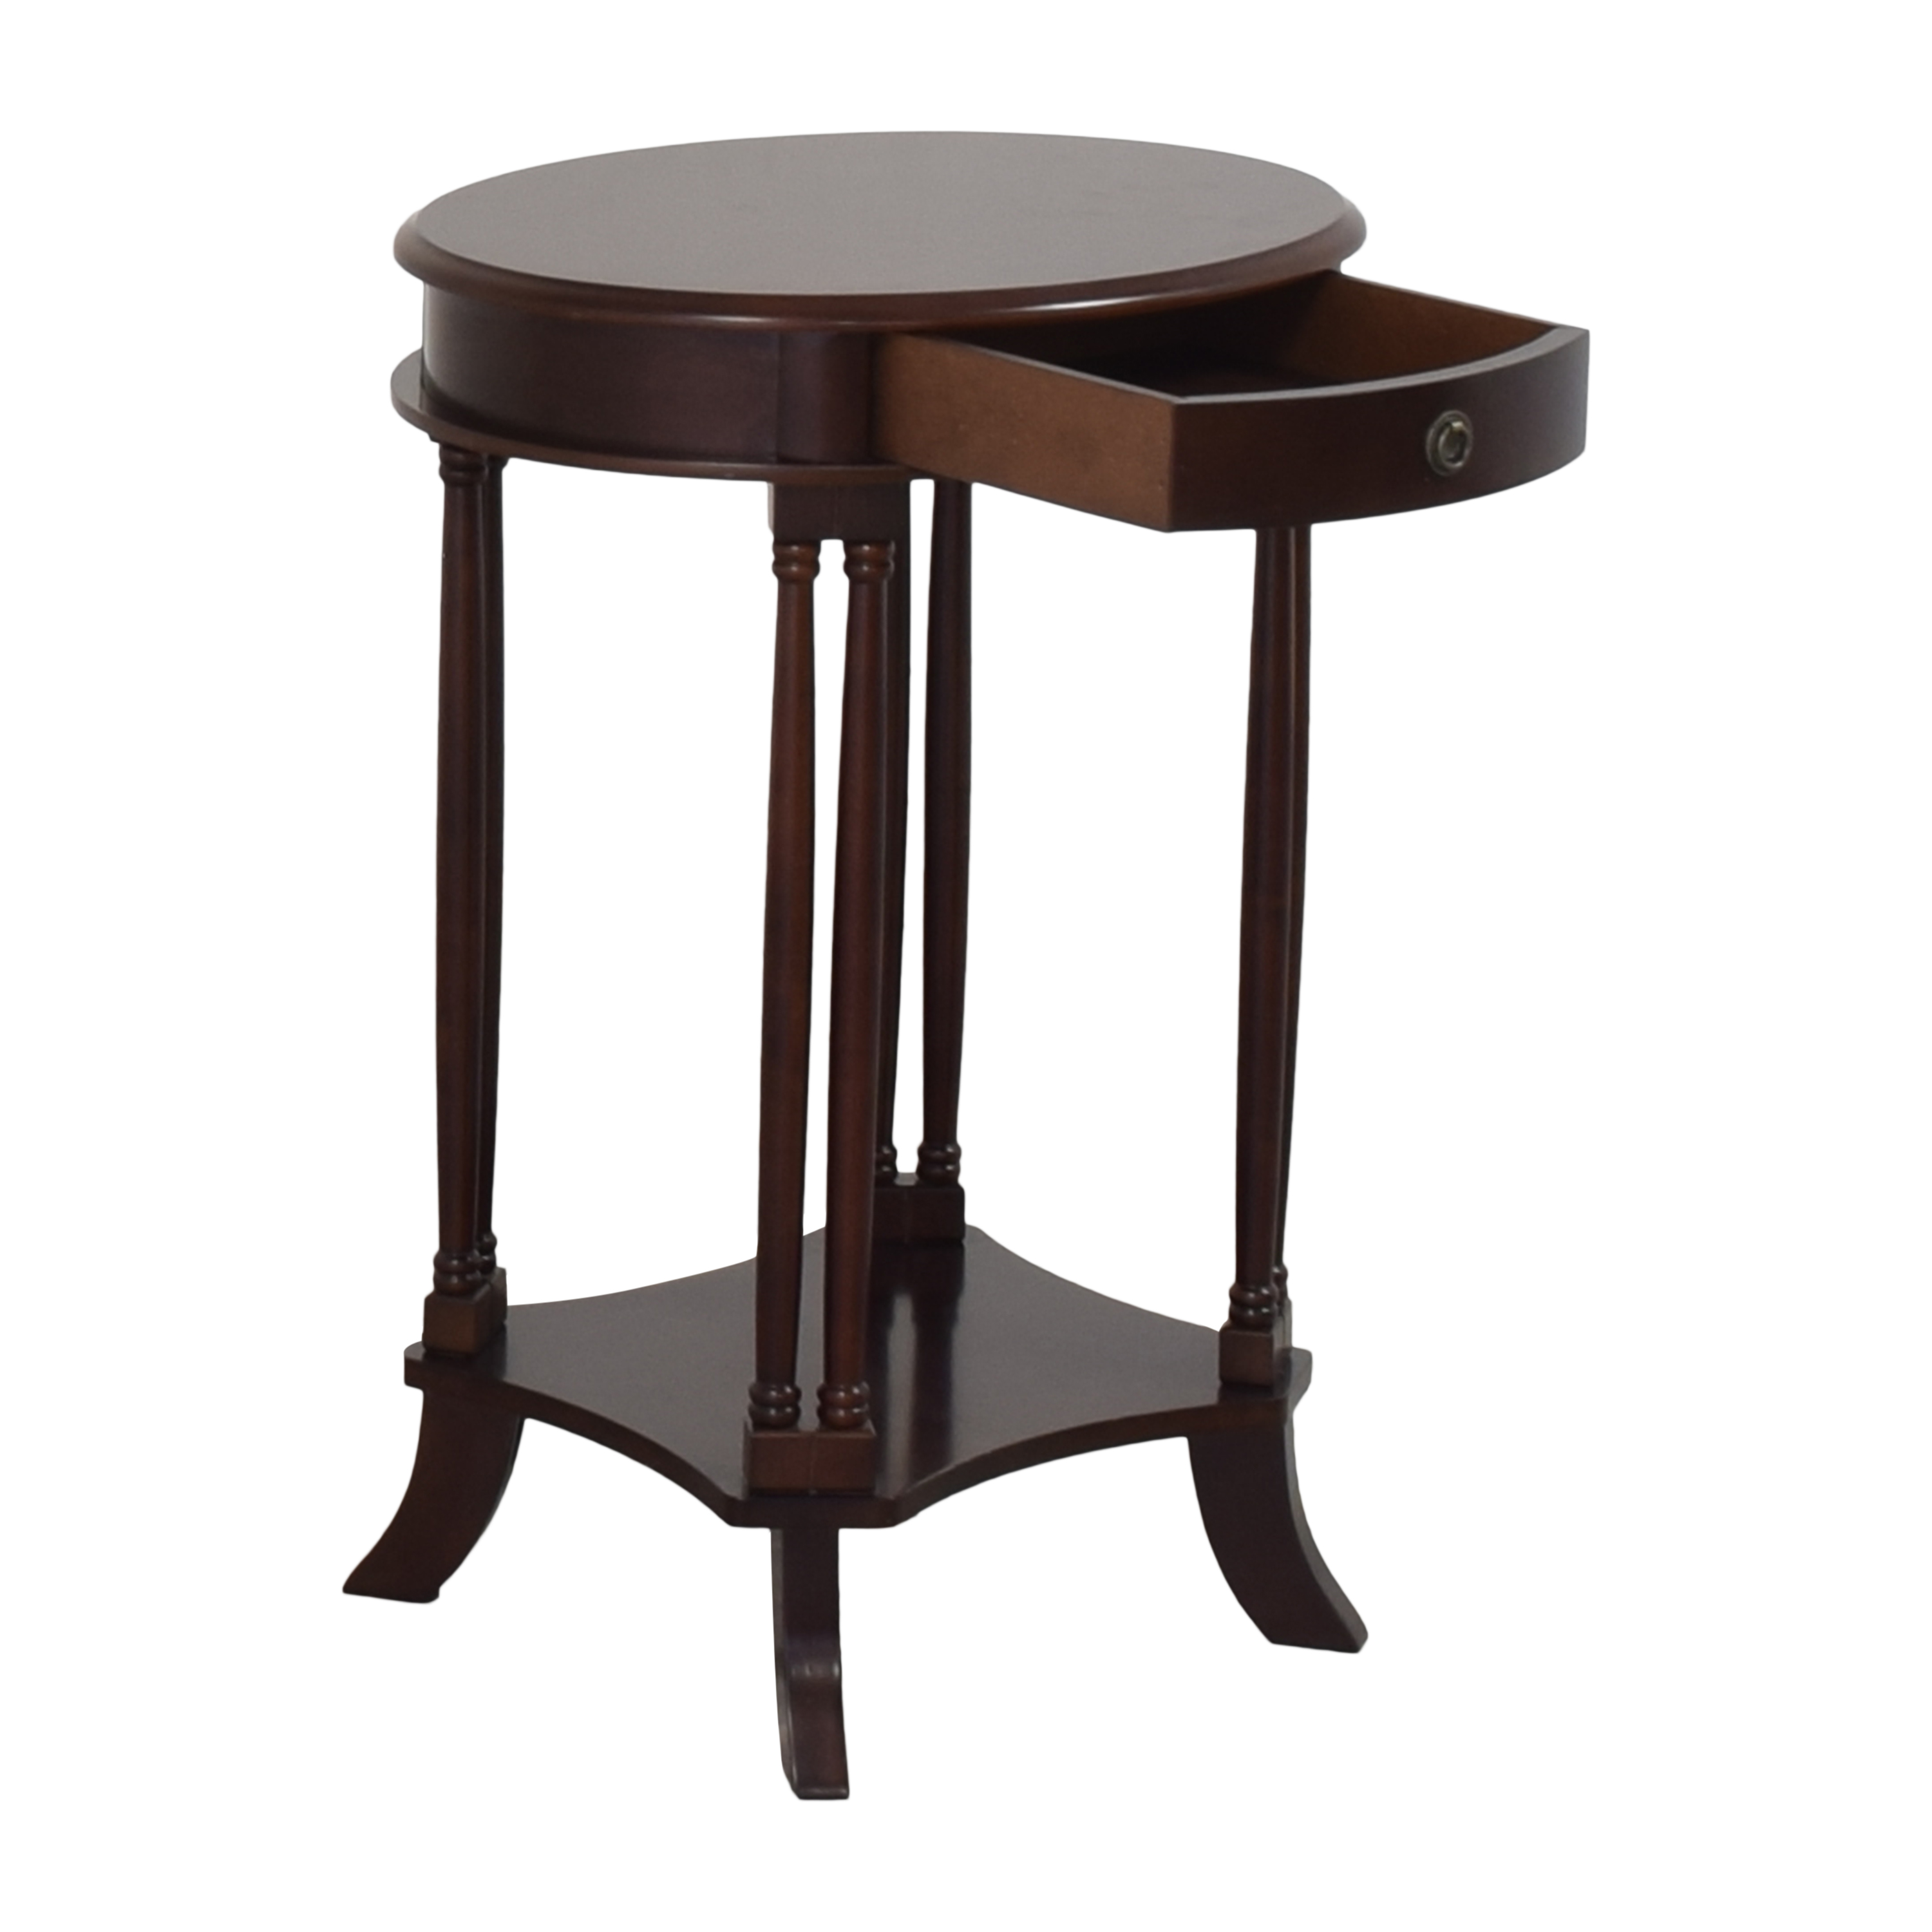 Round Side Table / End Tables